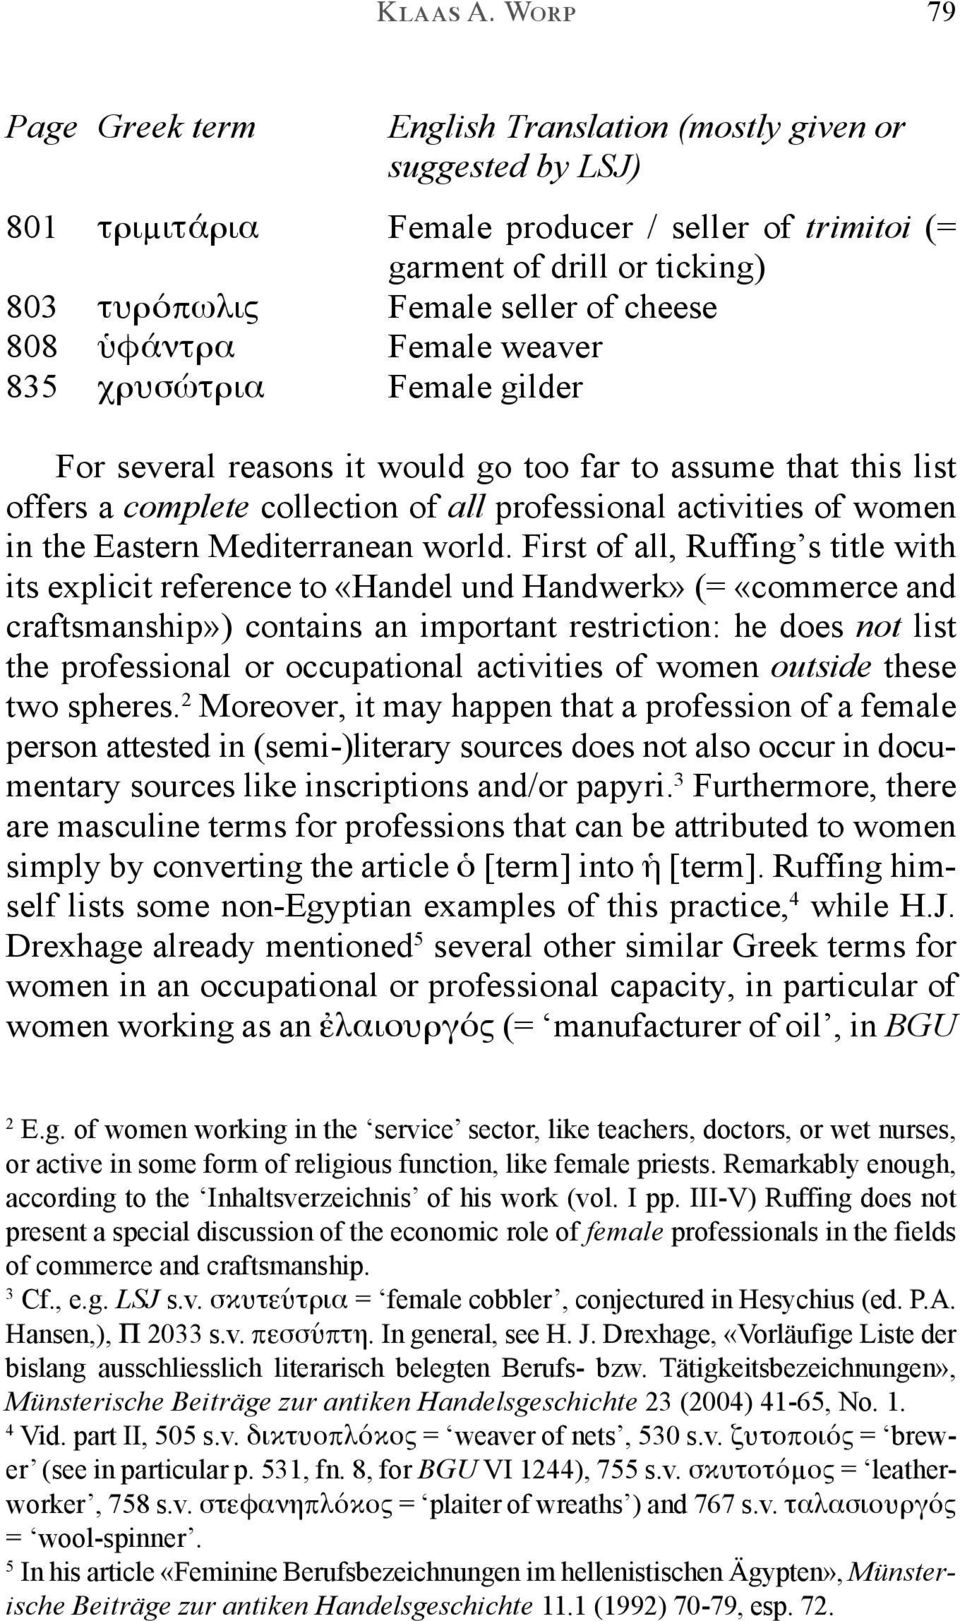 cheese 808 ὑφάντρα Female weaver 835 χρυσώτρια Female gilder For several reasons it would go too far to assume that this list offers a complete collection of all professional activities of women in